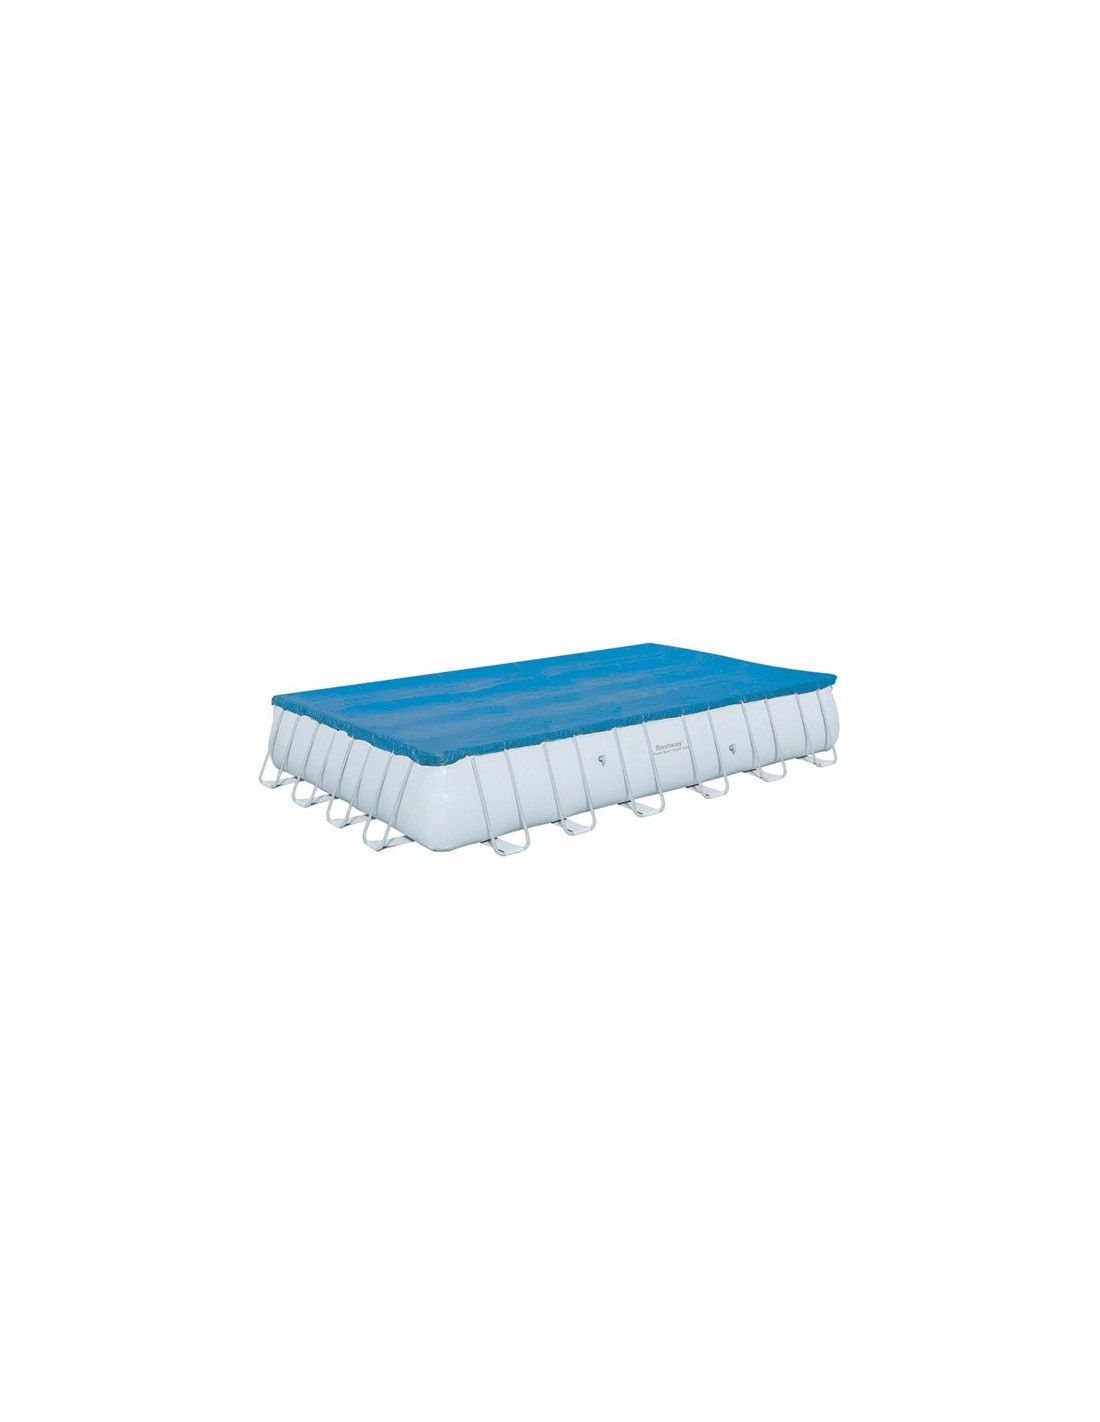 ... Piscine Tubulaire Bestway Bache Rectangulaire ...